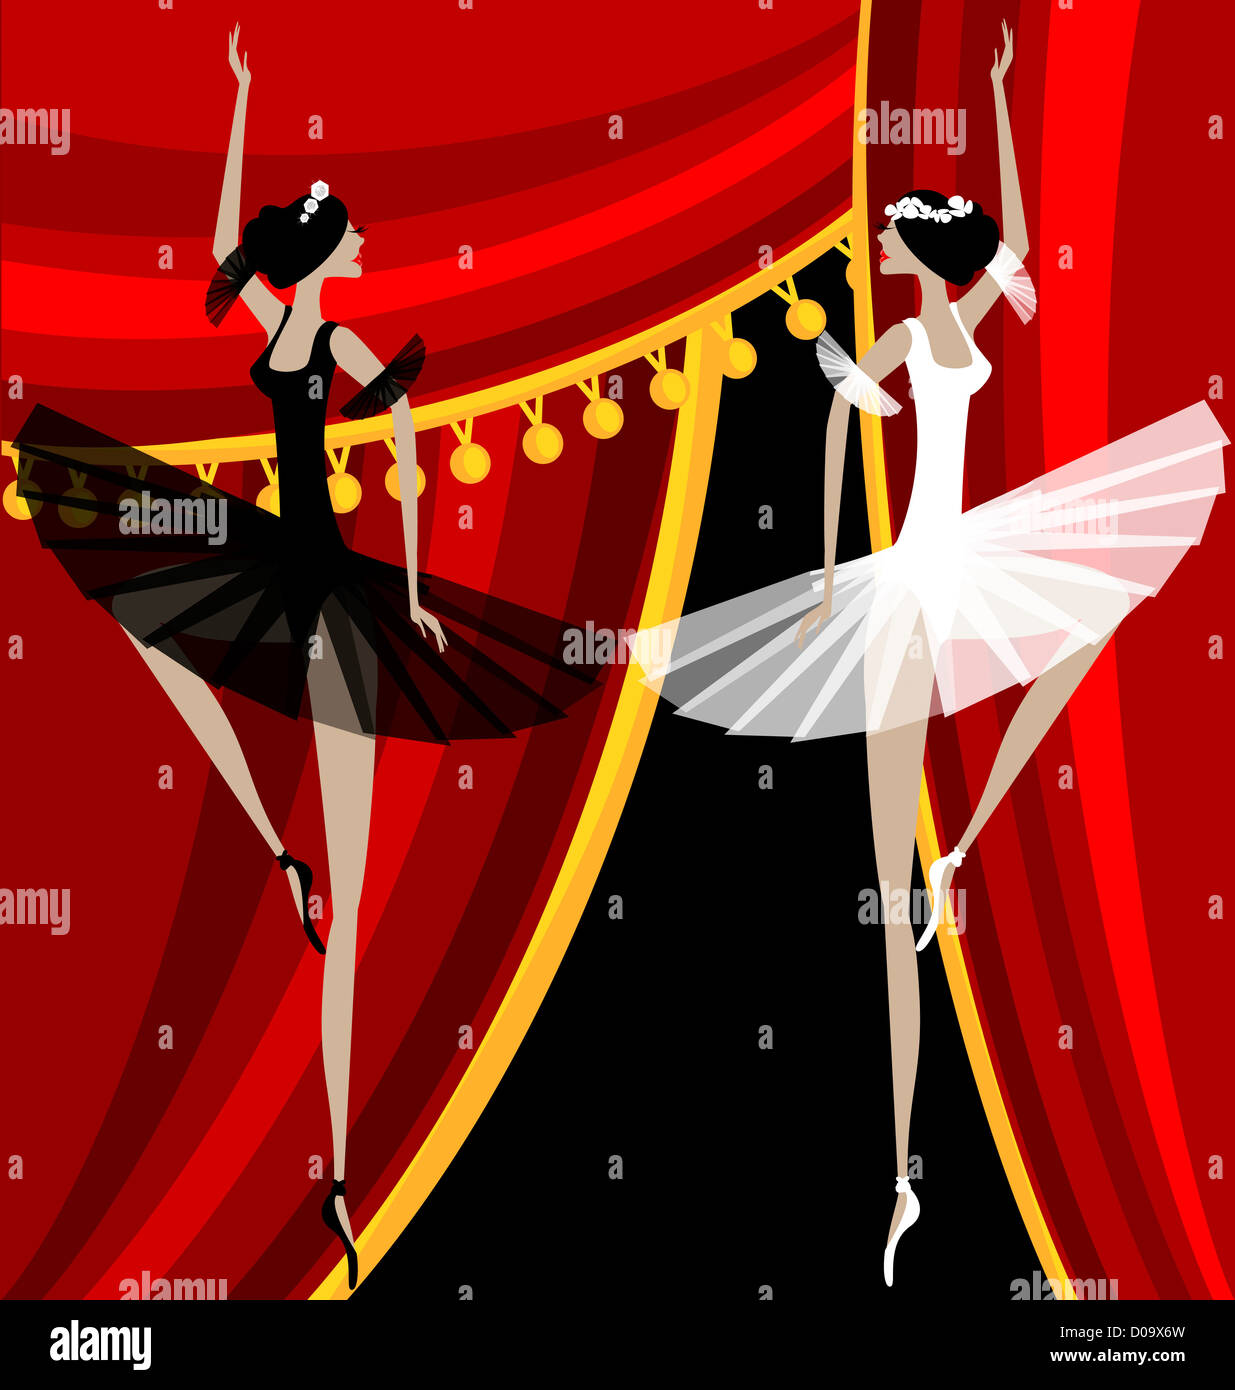 Against Red Curtain Dancing Black And White Ballet Dancers